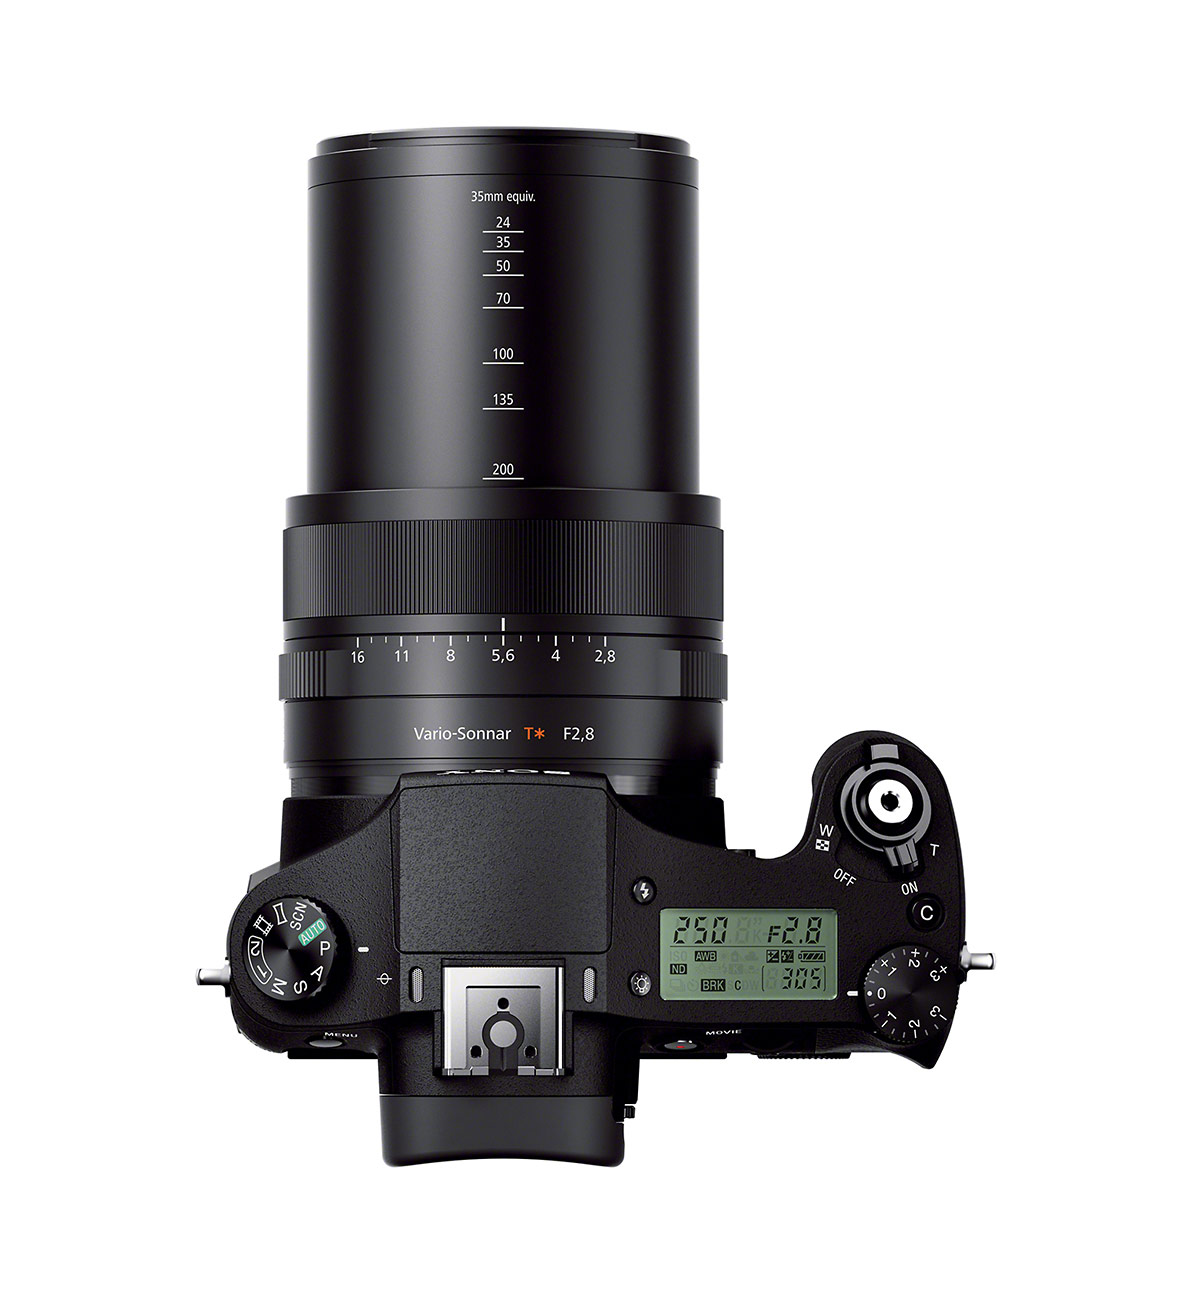 Sony Cybershot RX10 With 24-200mm f/2.8 Carl Zeiss Zoom Lens